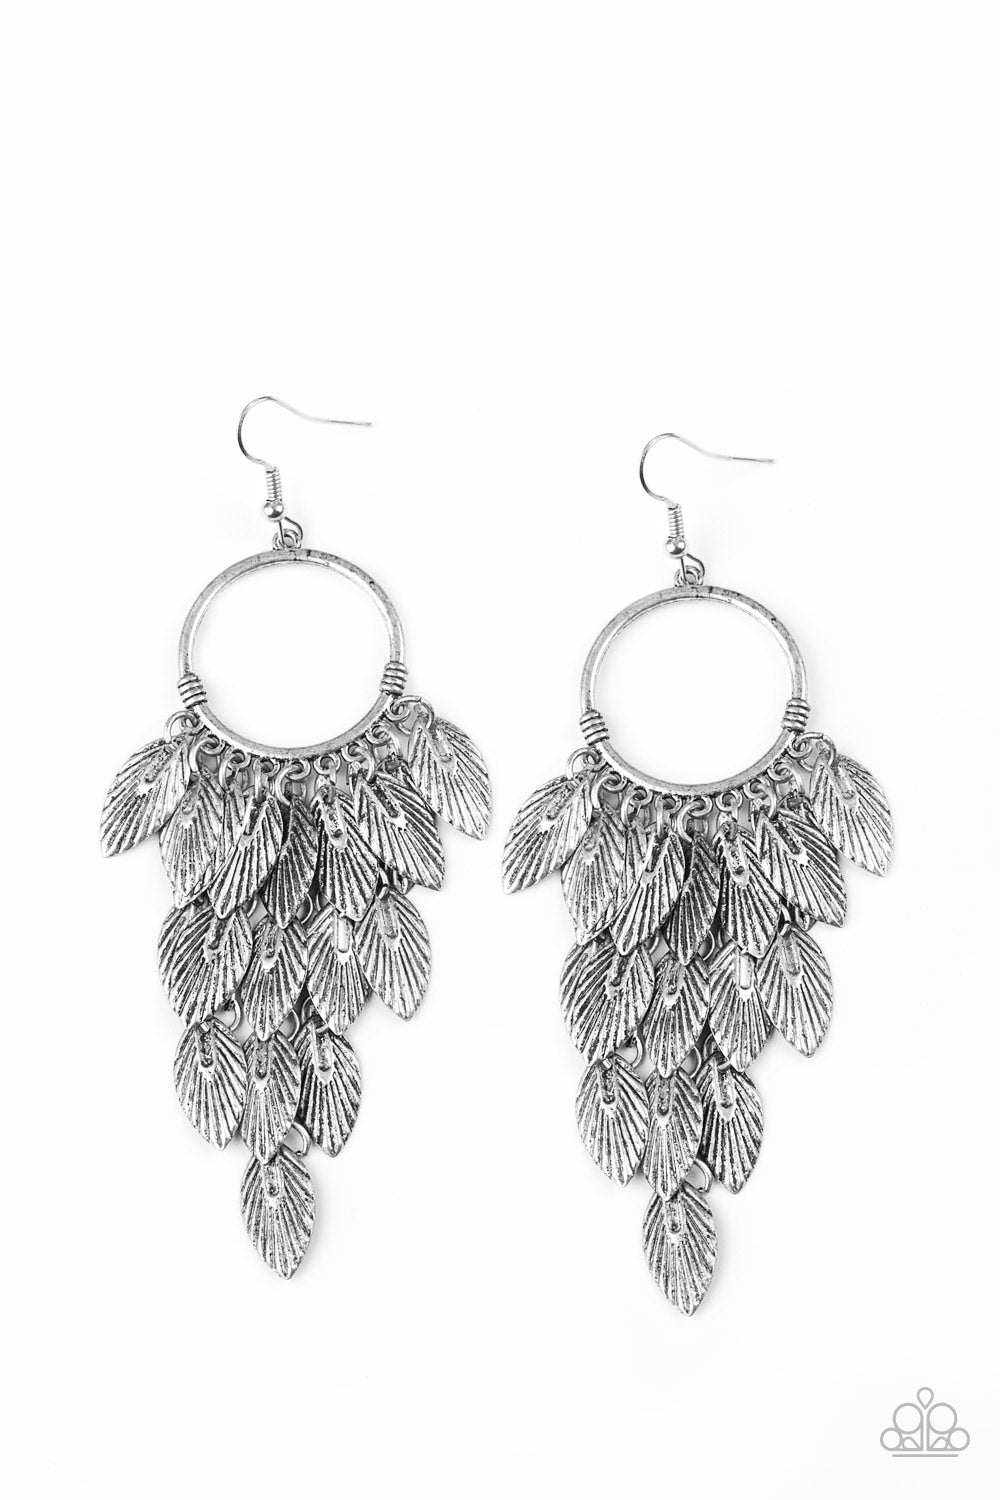 Feather Frenzy - Silver Paparazzi Earrings - SavvyChicksJewelry